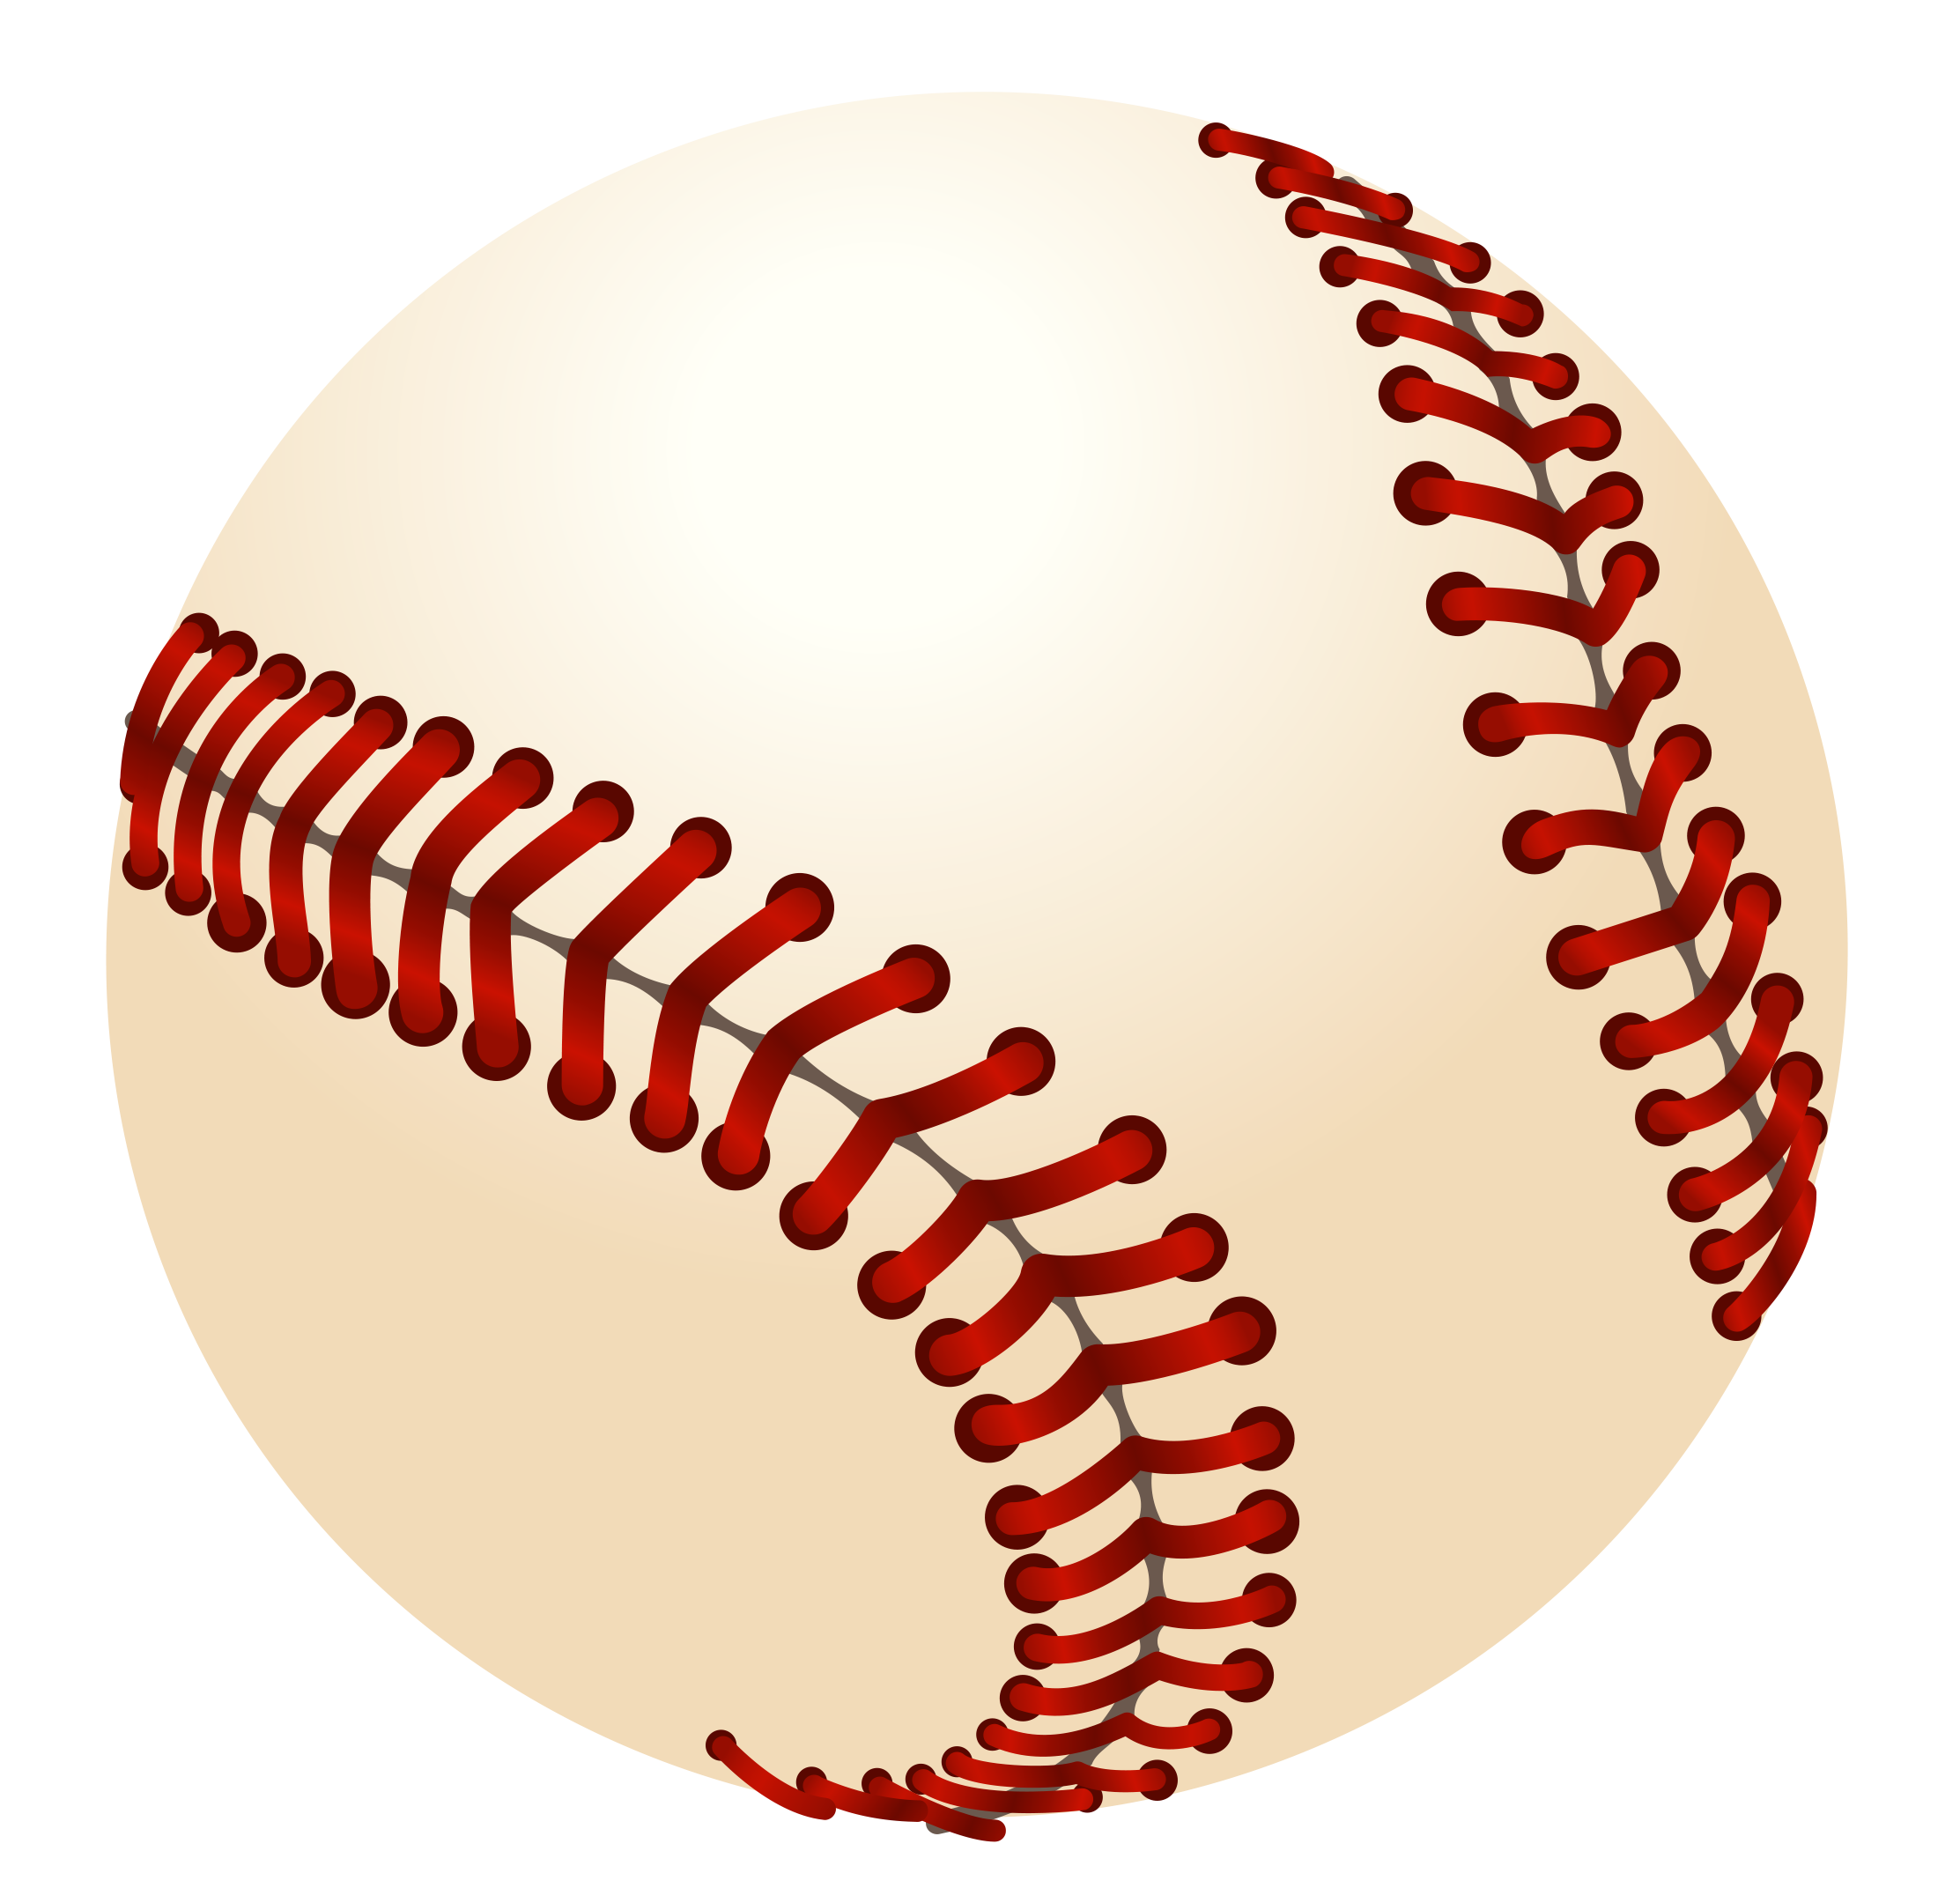 Men clipart baseball. Ball png picture gallery